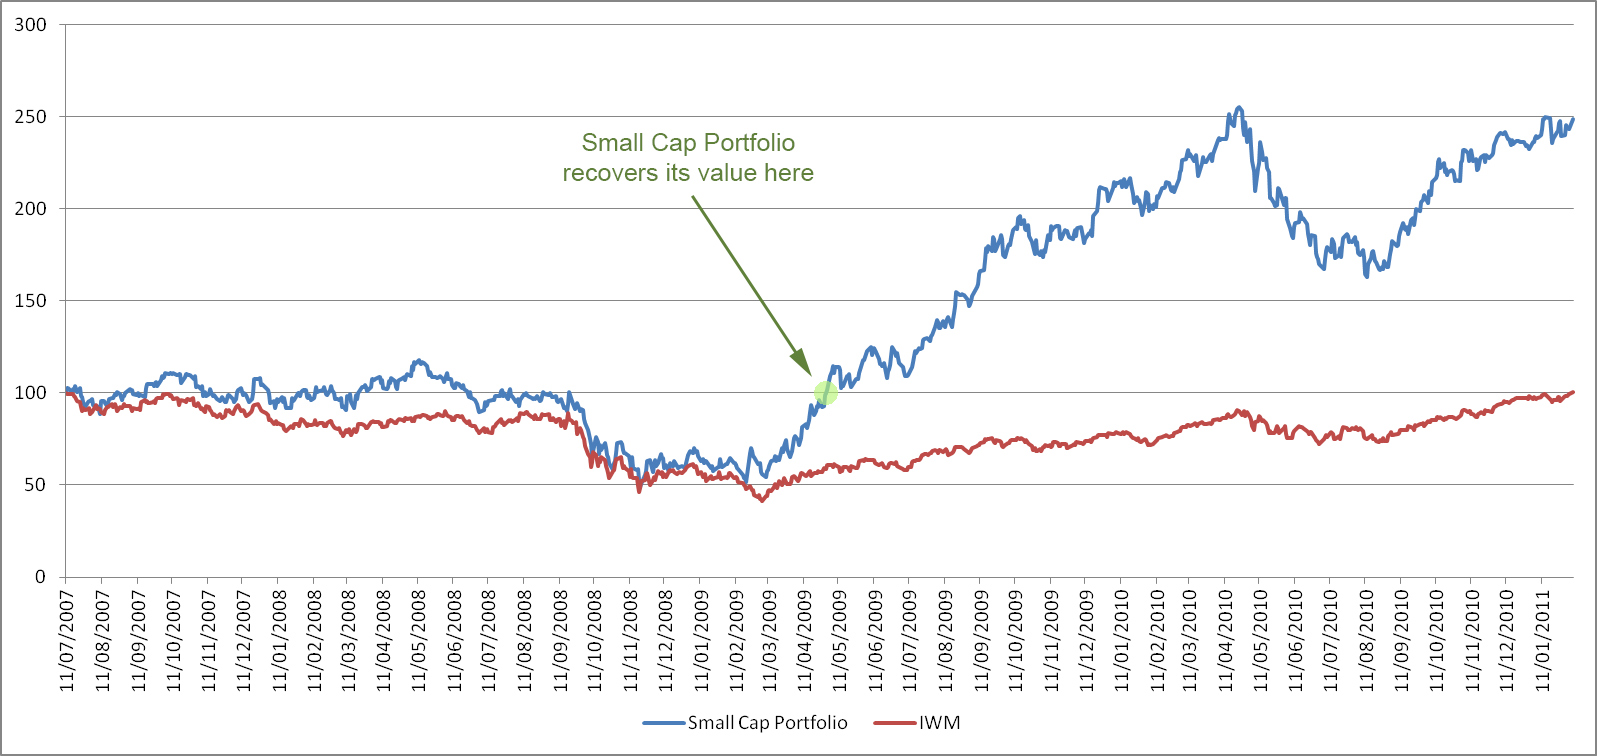 Small Cap Portfolio in 2007-2008